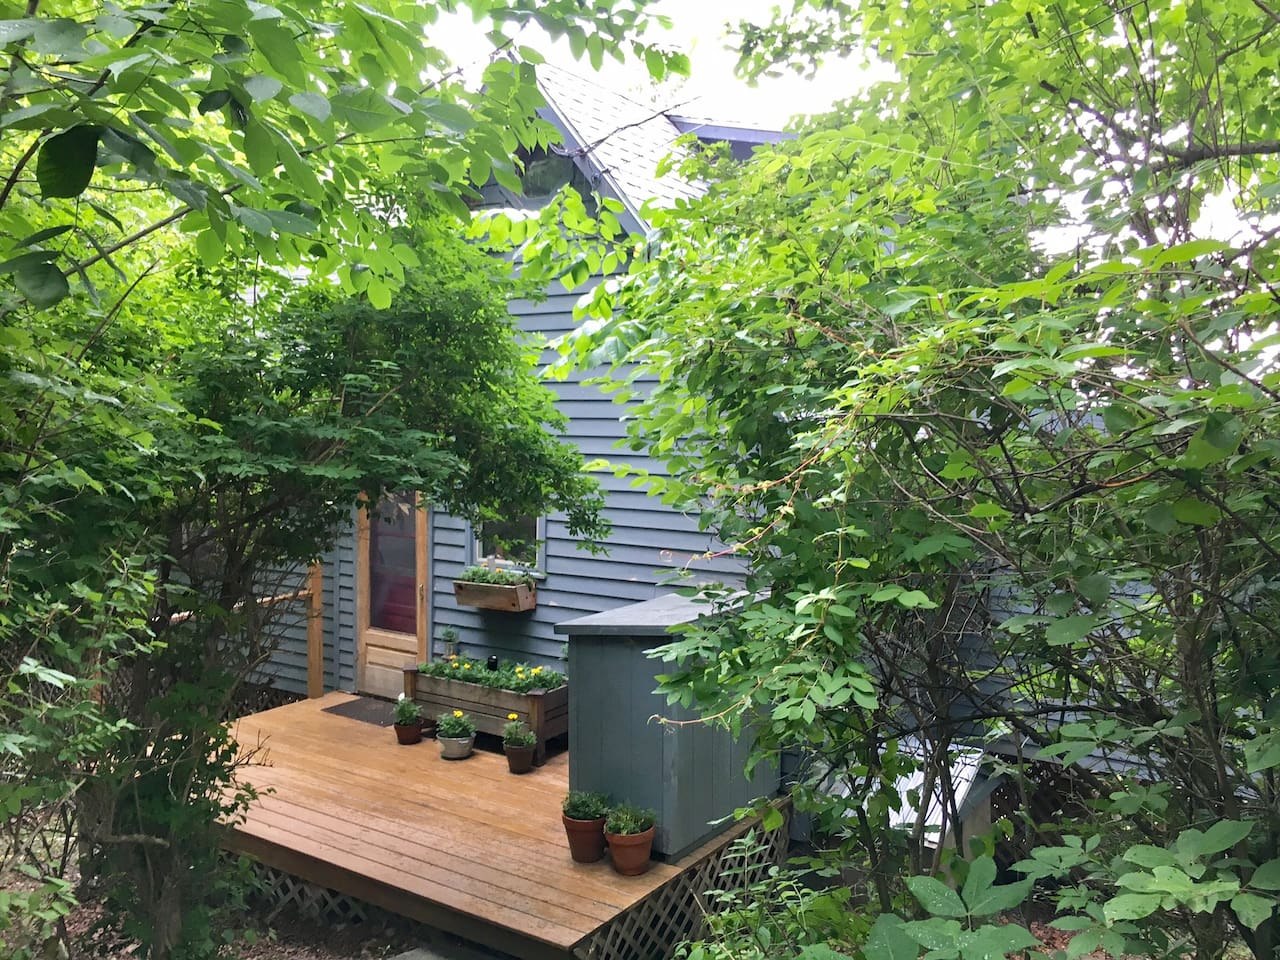 My 2BR cottage is tucked away behind the trees, but the opposite side of it, perched high on a hill, looks miles over the treetops to the Catskills!